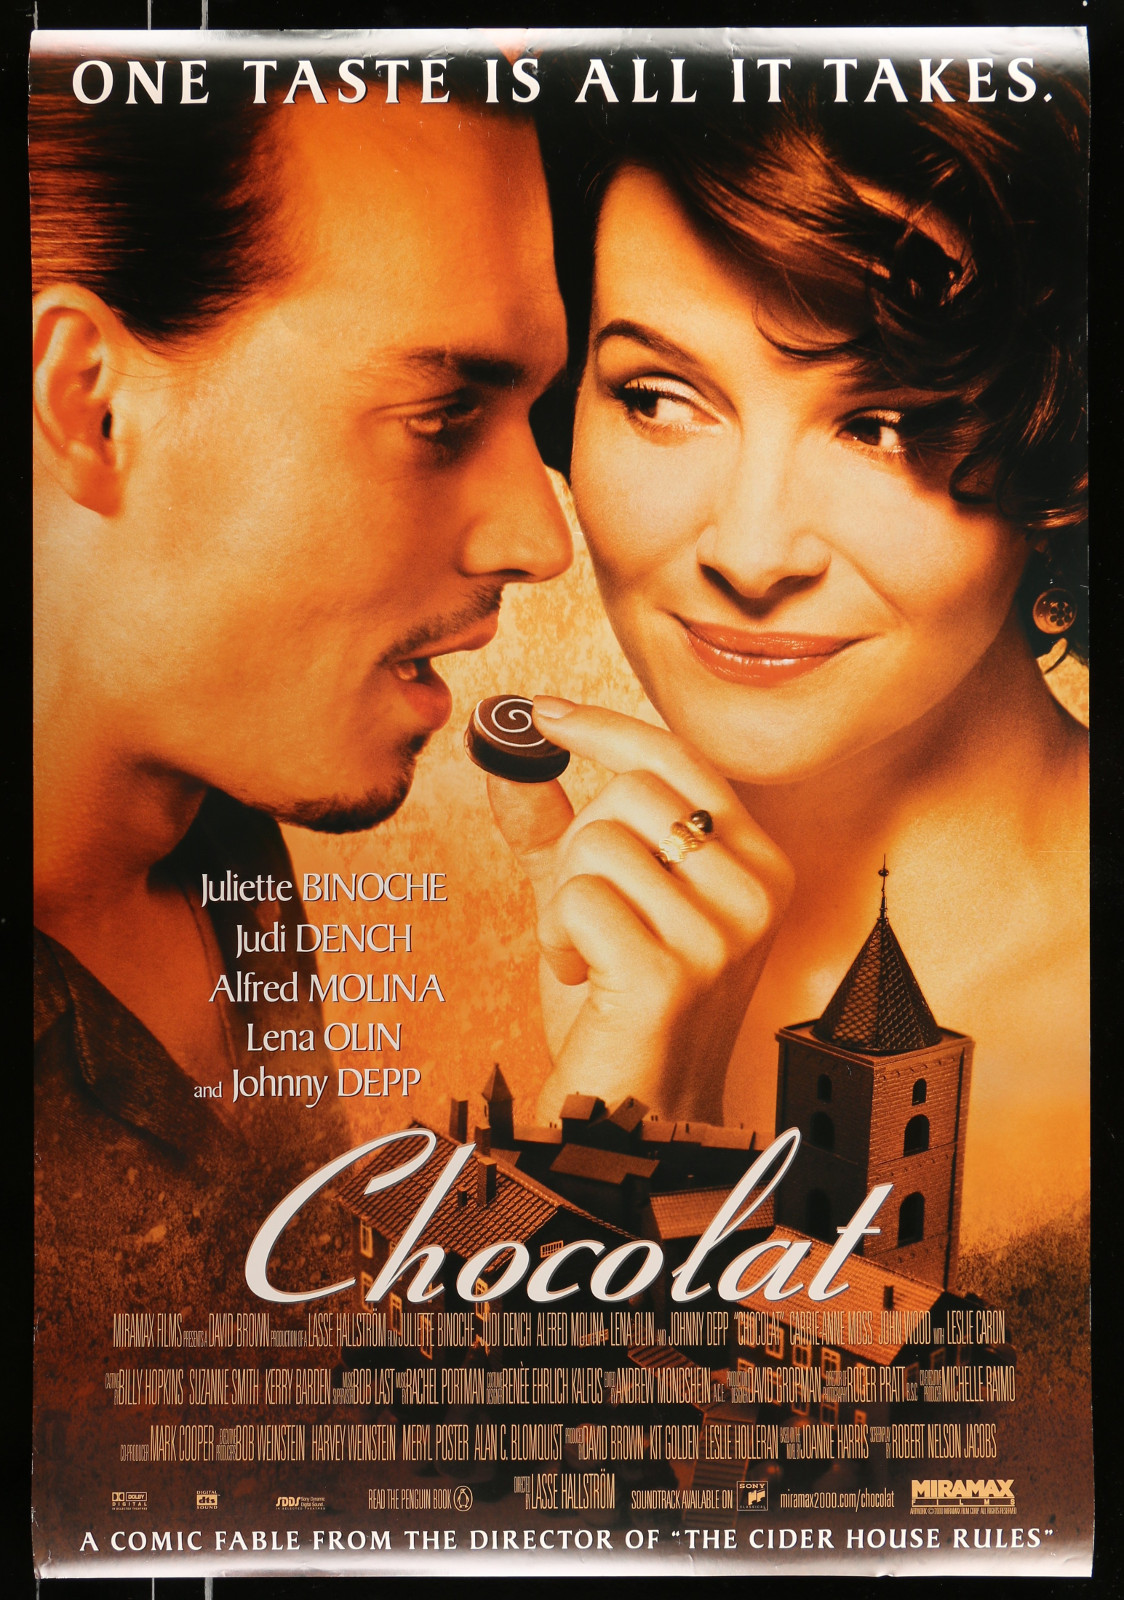 Chocolat 2A413 A Part Of A Lot 20 Unfolded Mostly Double-Sided 27X40 One-Sheets '90S-00S Great Movie Images!